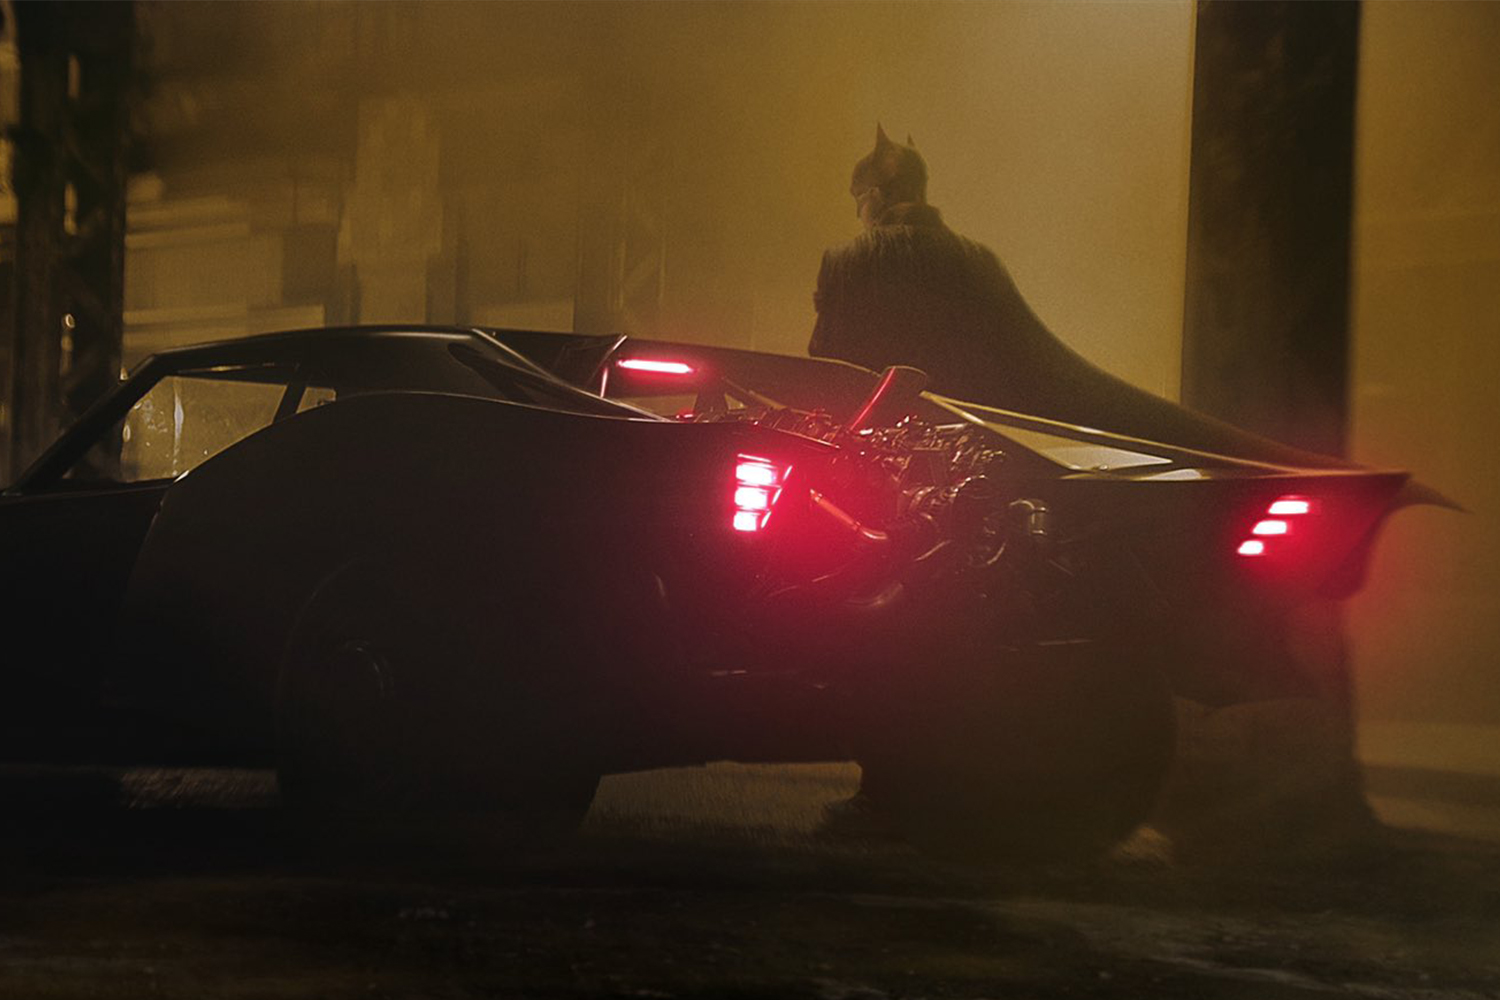 Batman standing next to the new Batmobile